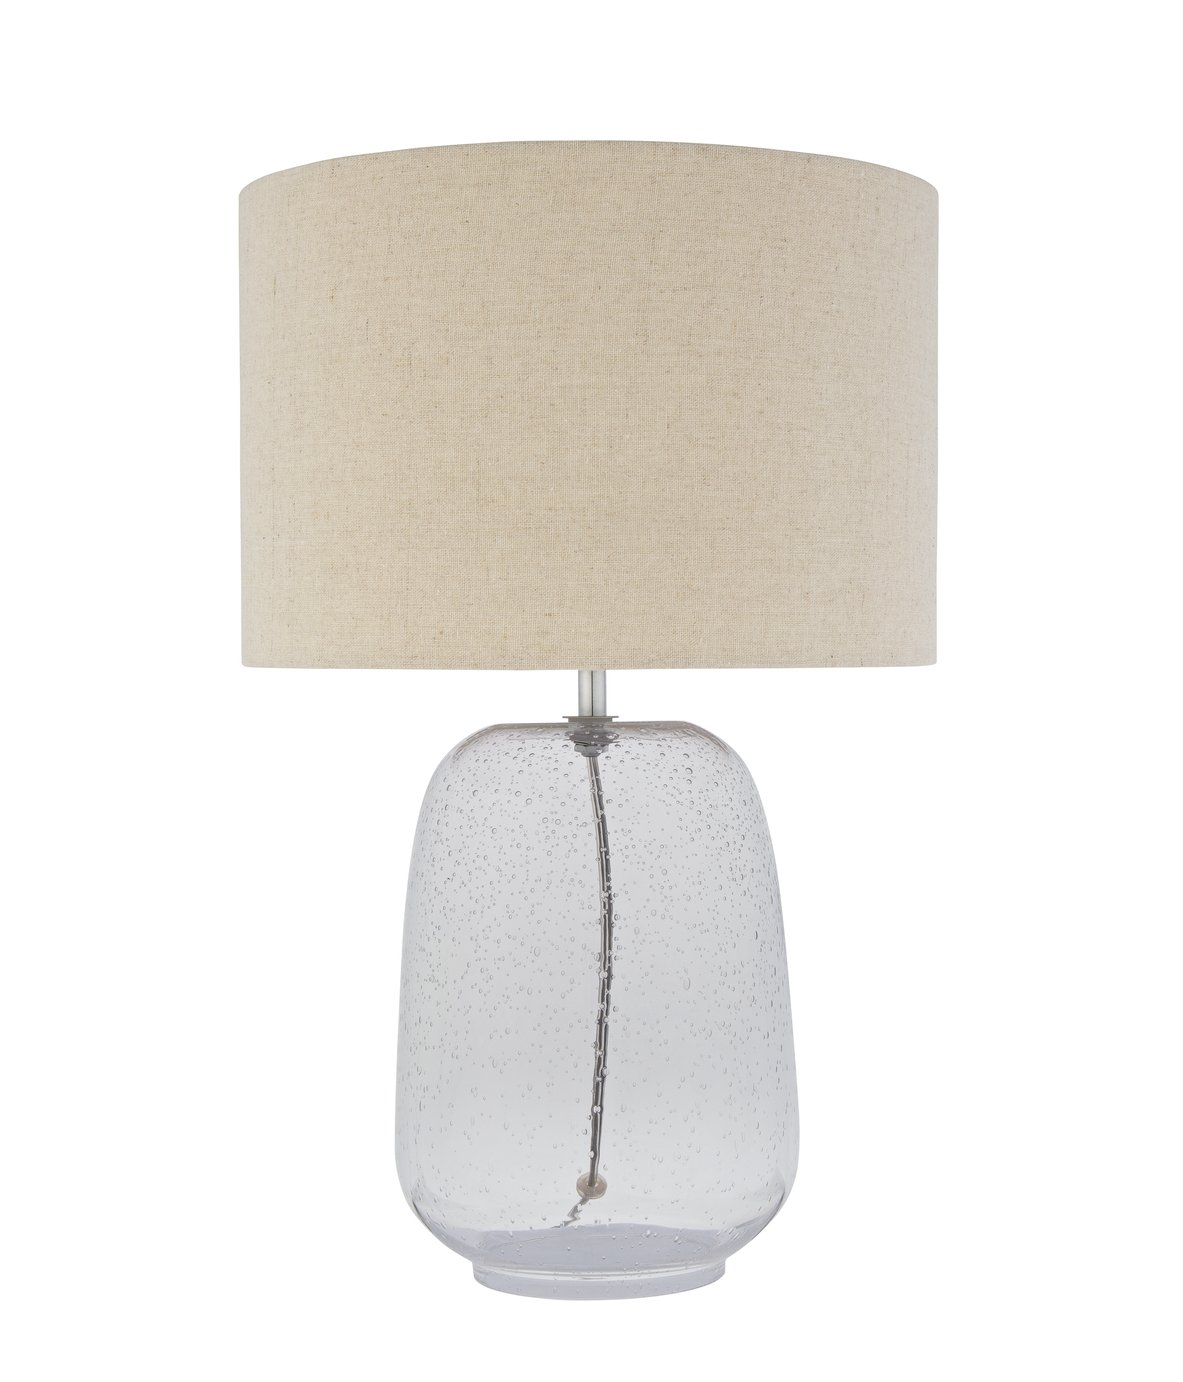 Argos Home Highland Lodge Table Lamp - White